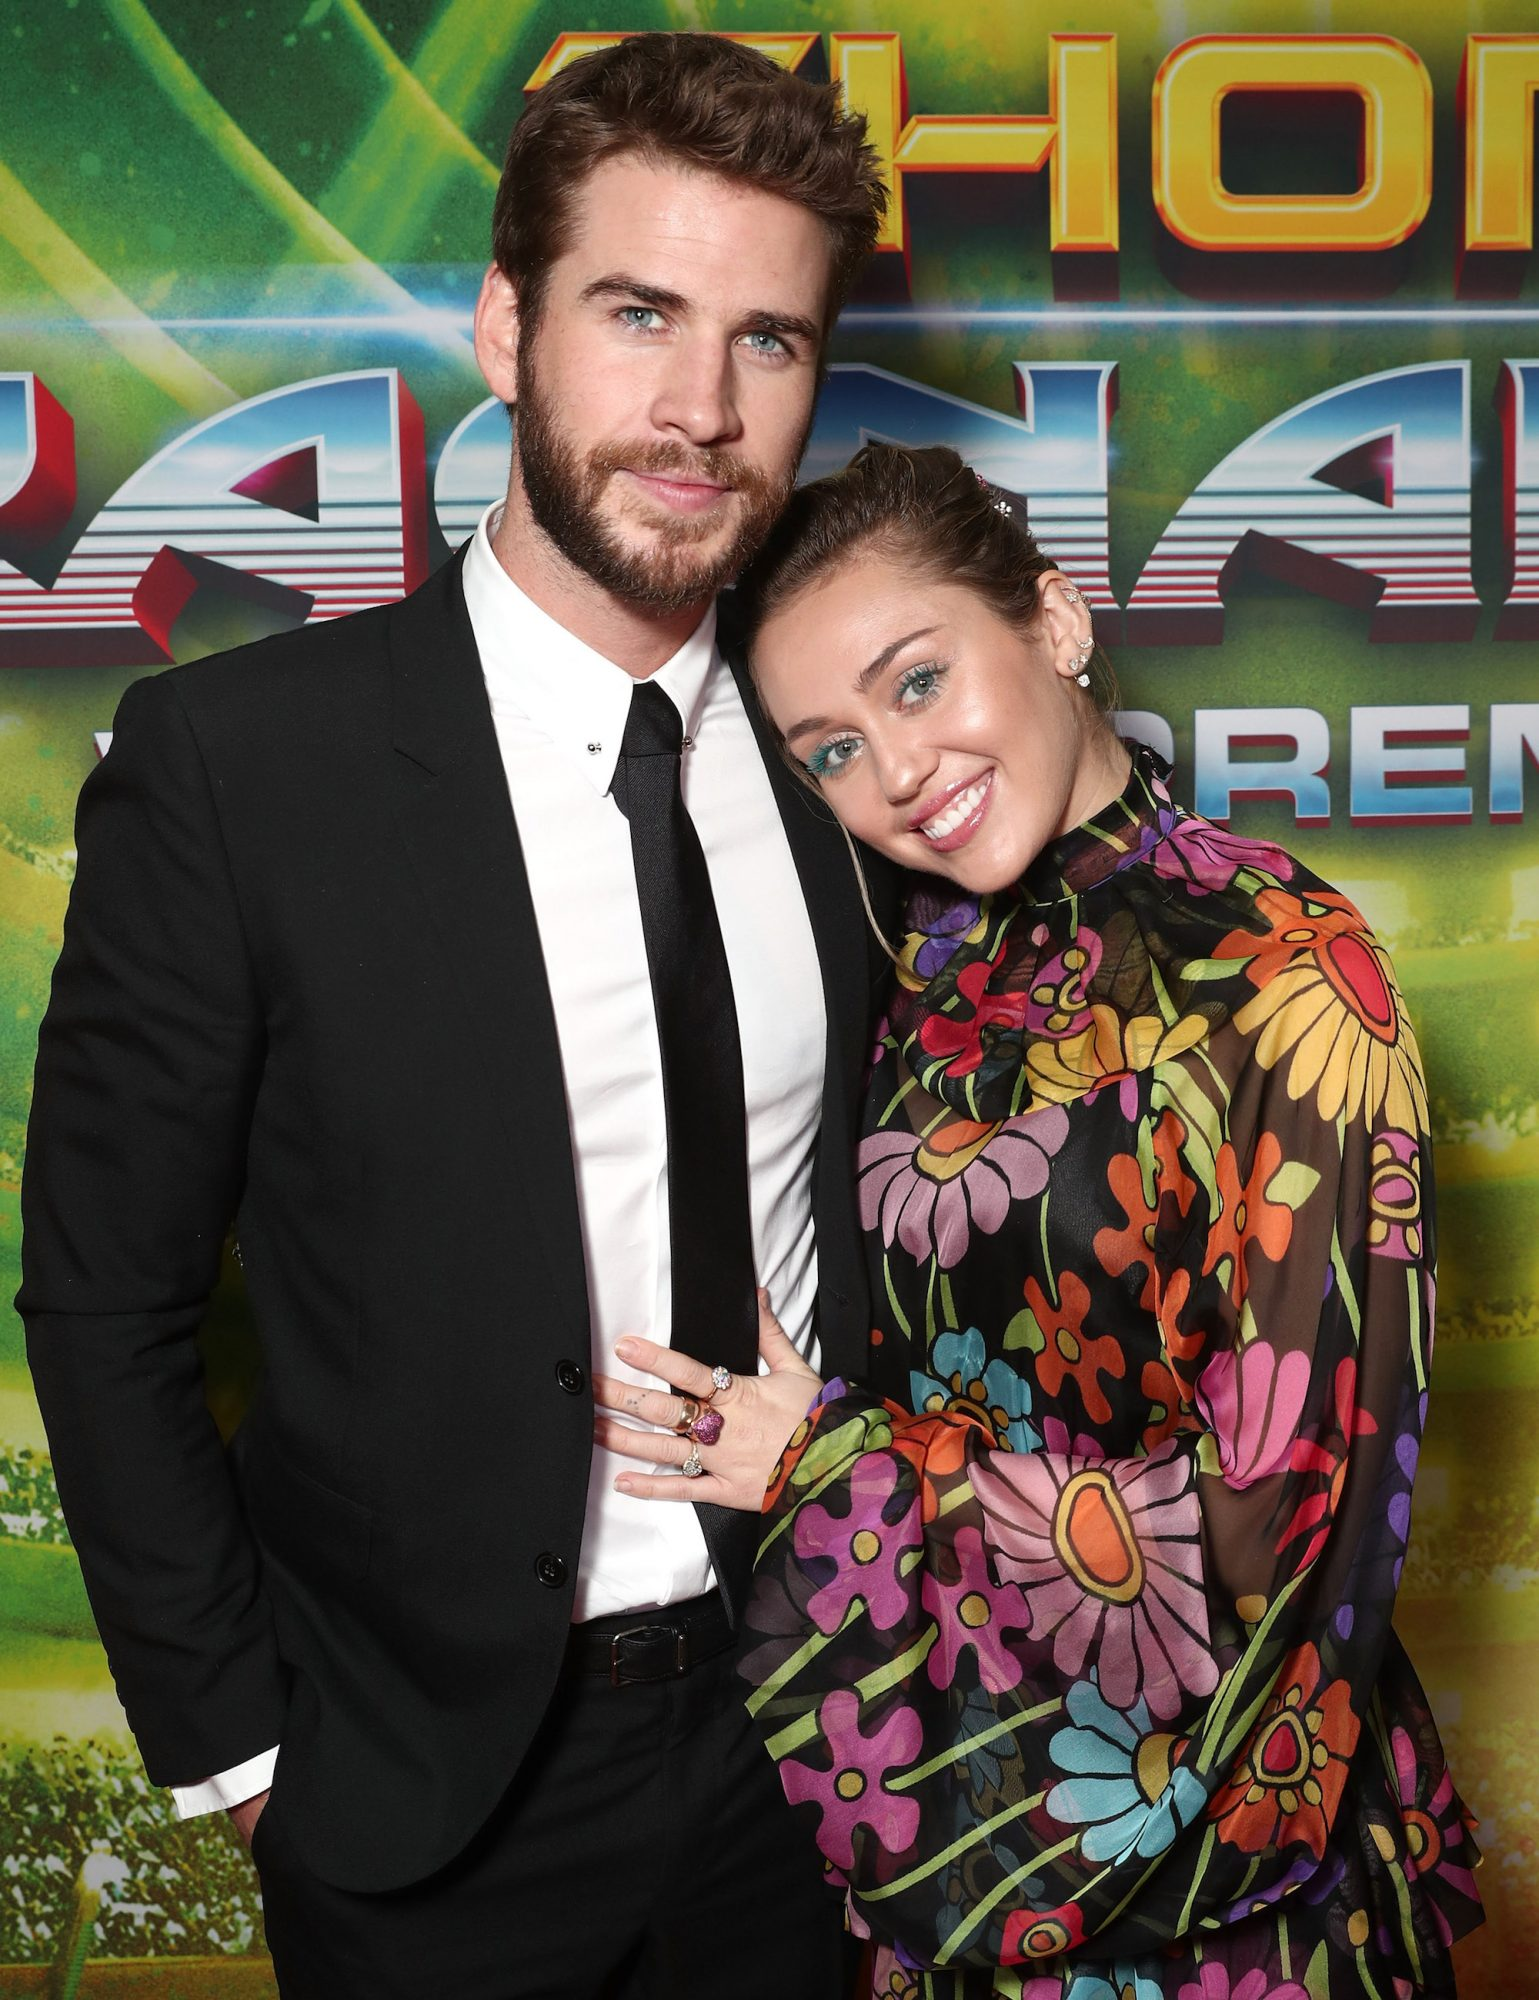 Miley Cyrus and Liam Hemsworth lead